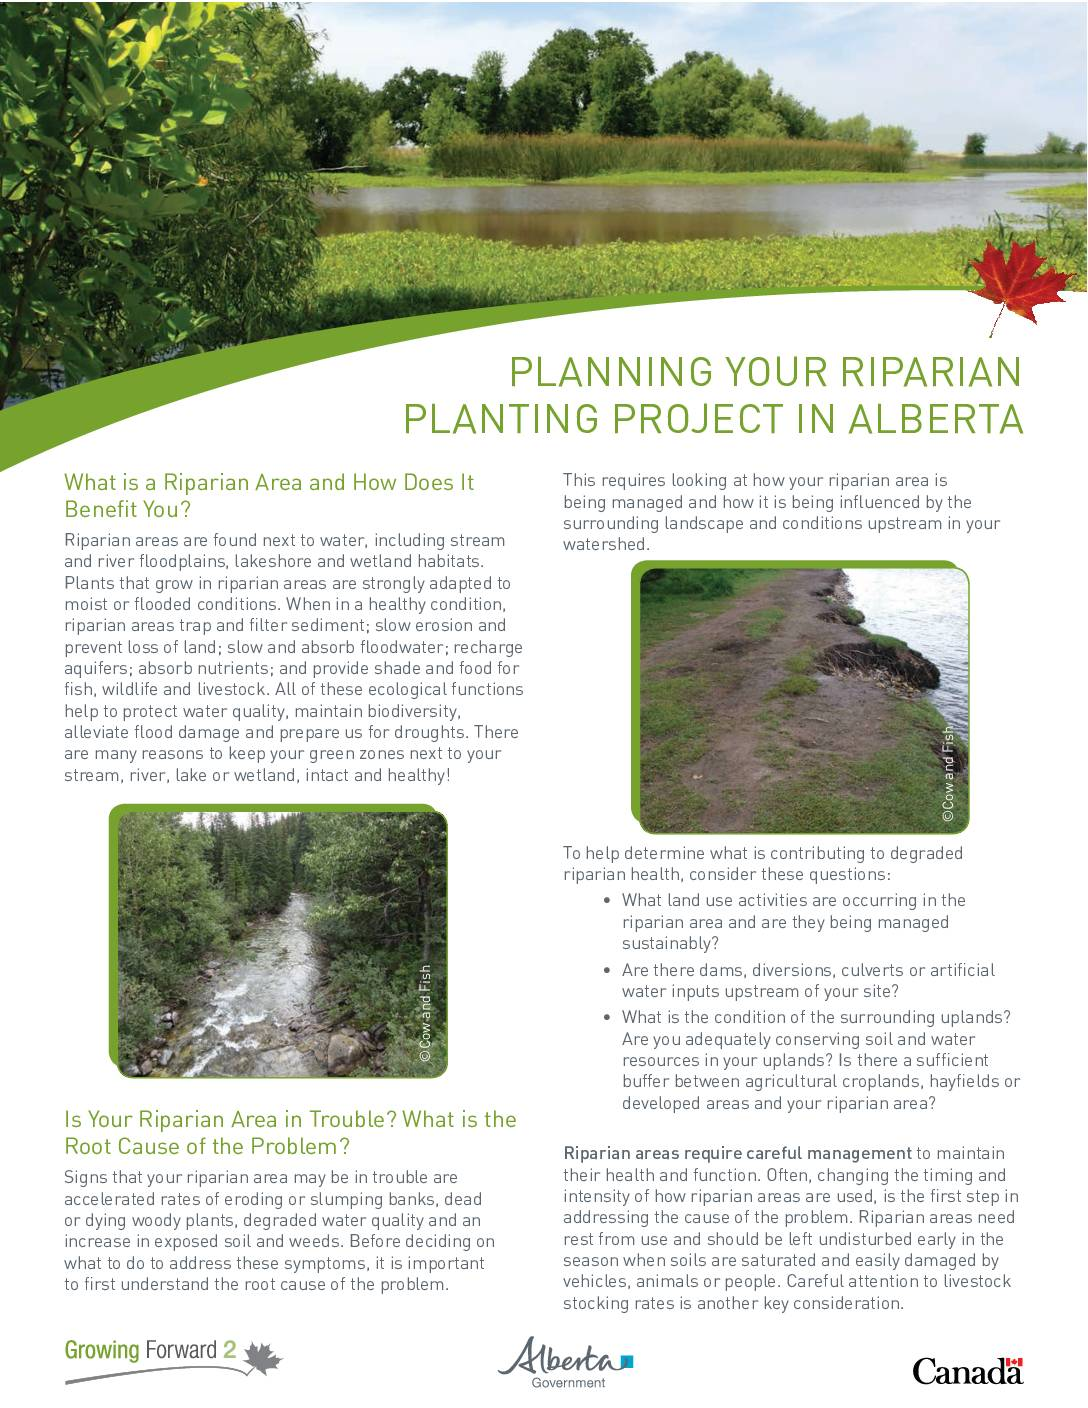 Planning your Riparian Planting Project in Alberta